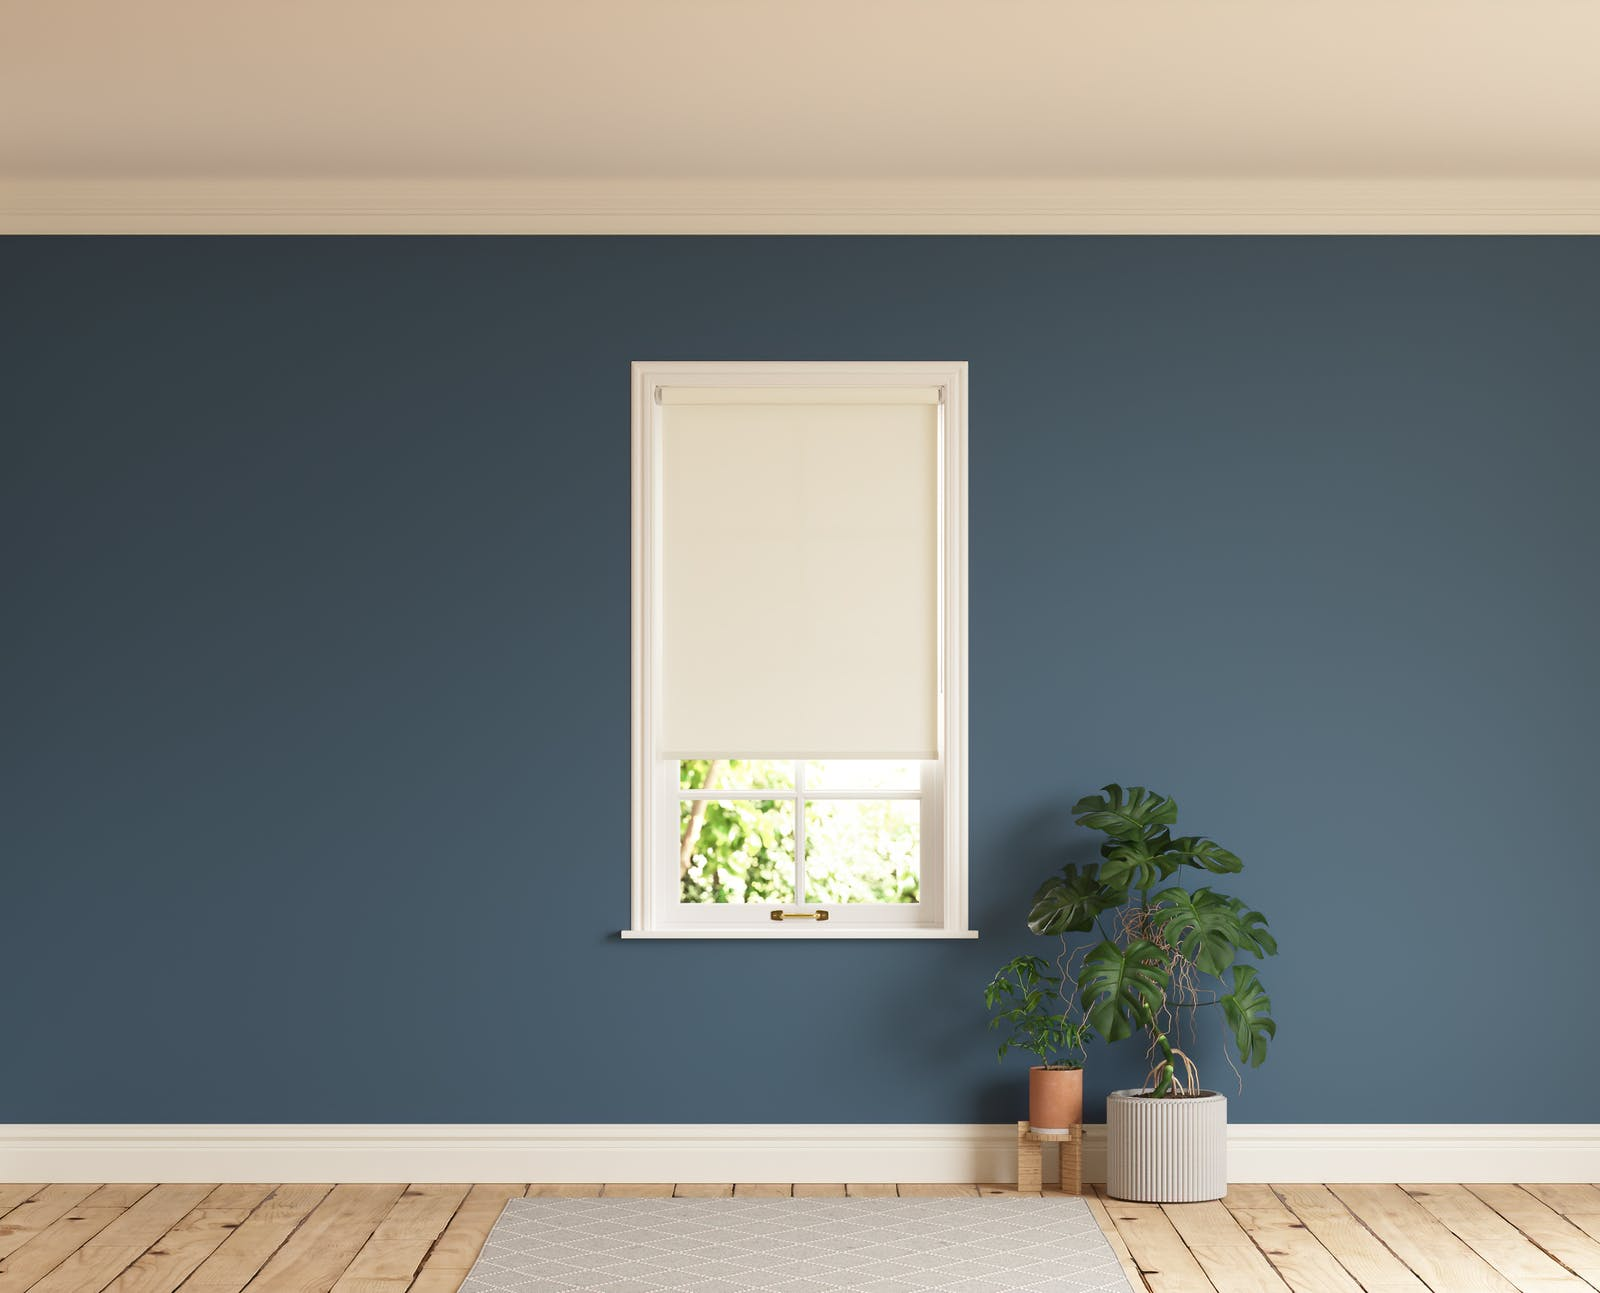 Room with walls painted in Lick Blue 06 and White 01 roller blinds